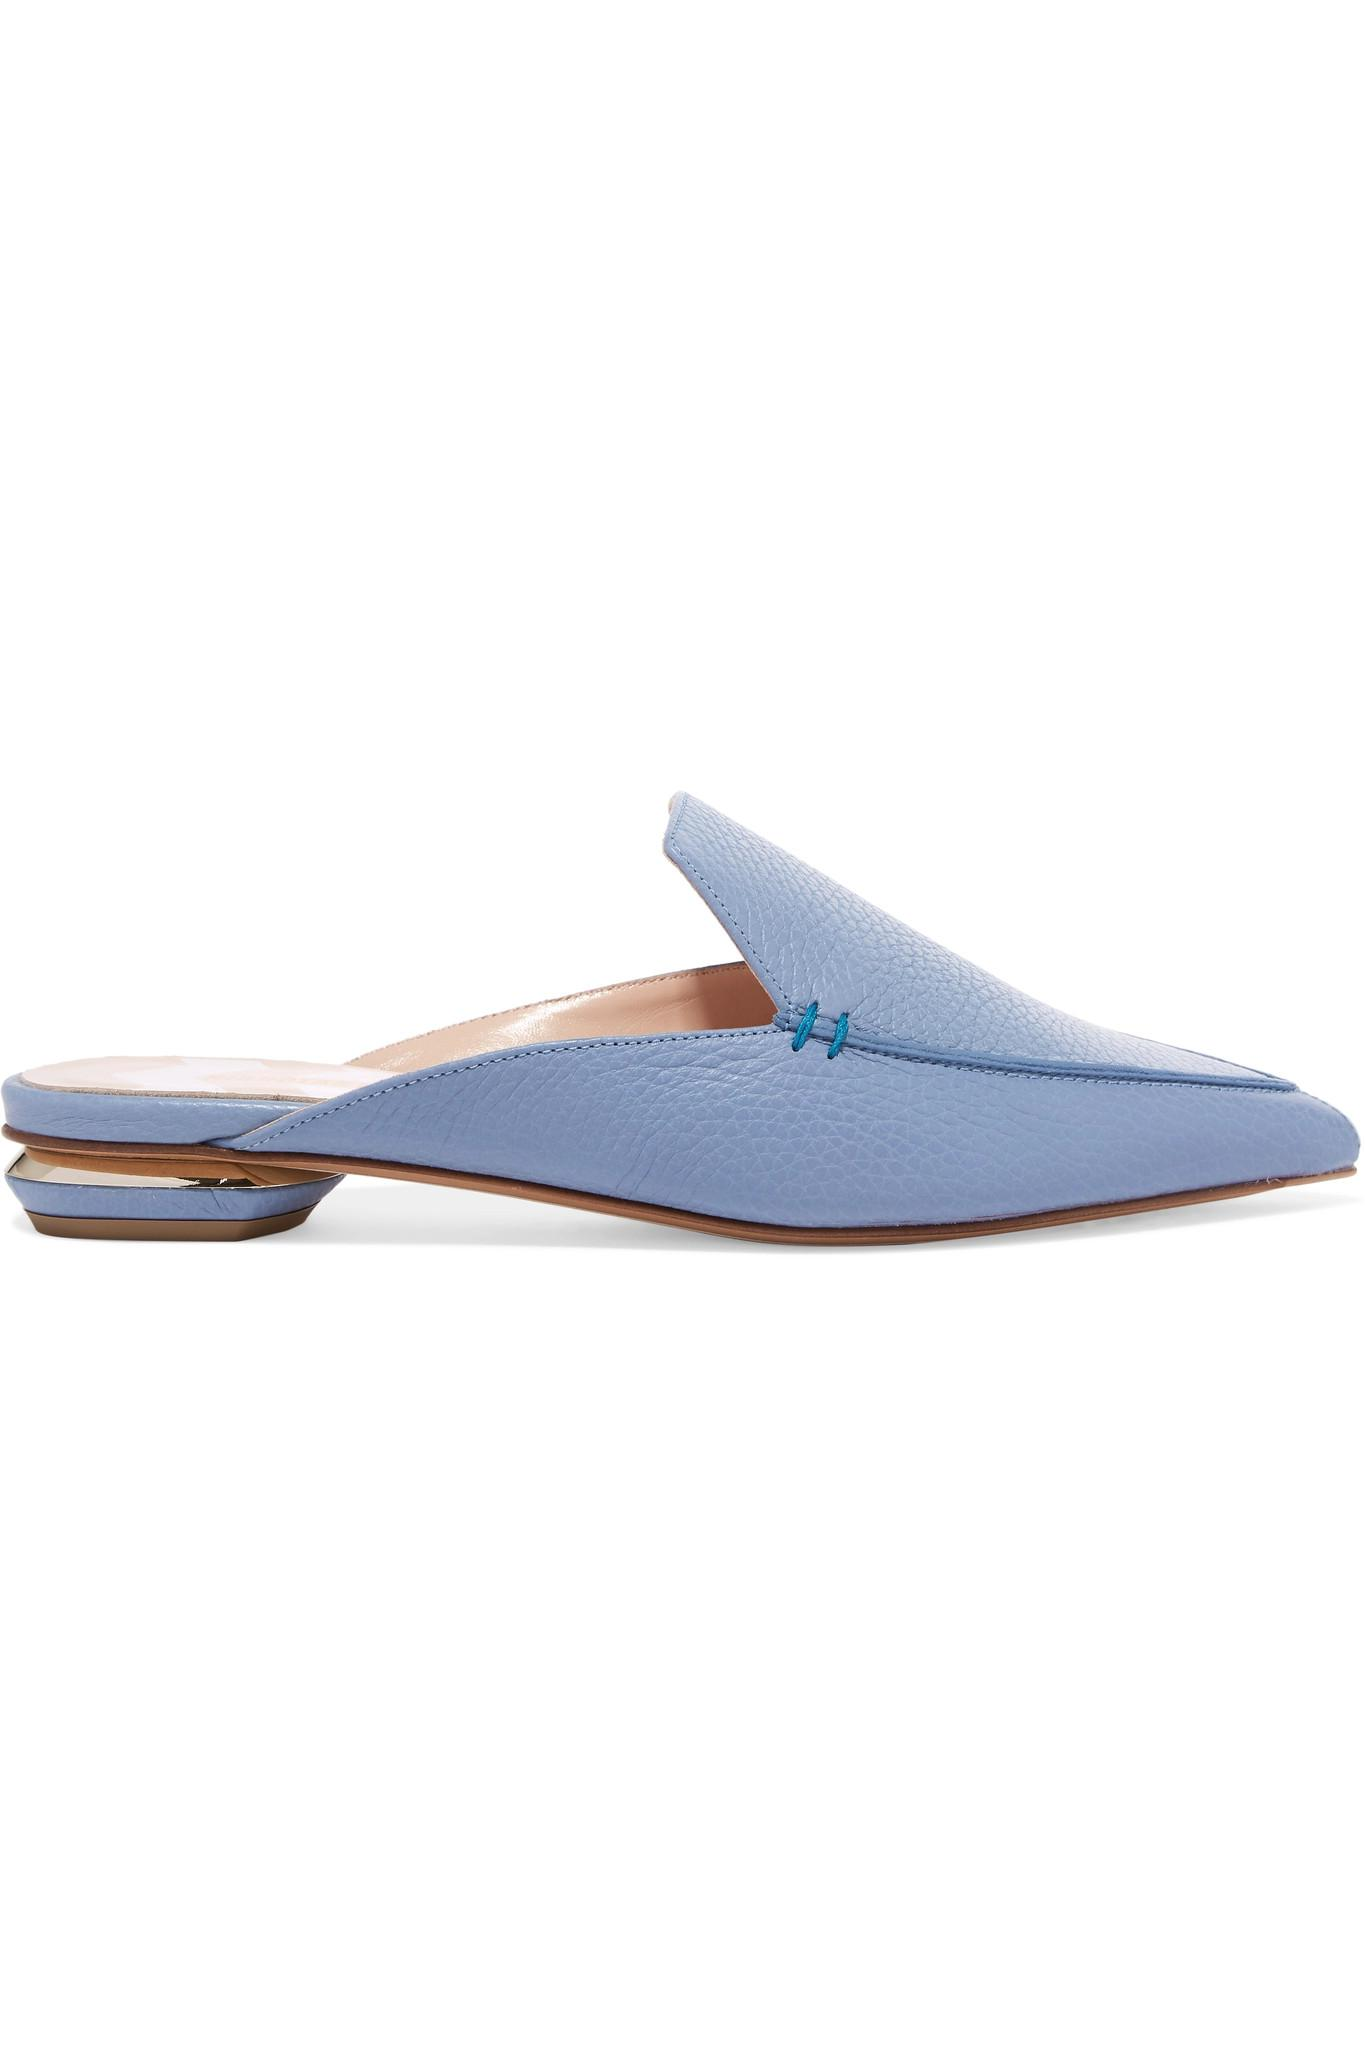 Beya Textured-leather Slippers - Sky blue Nicholas Kirkwood Cheap Price Outlet RMe3B